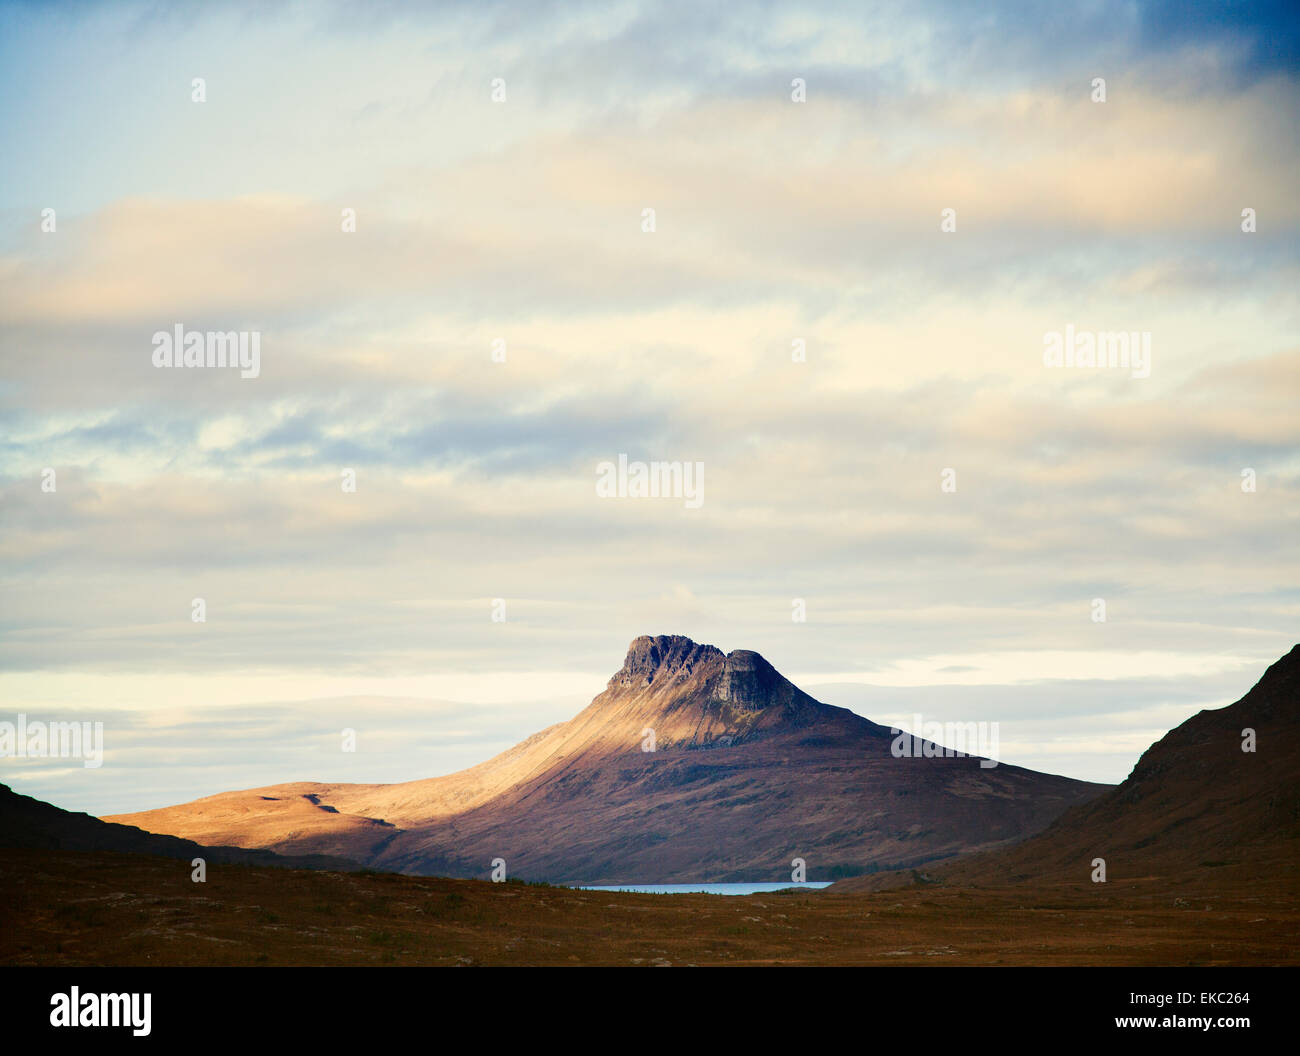 View of Stac Pollaidh, Assynt, North West Highlands, Scotland, UK - Stock Image